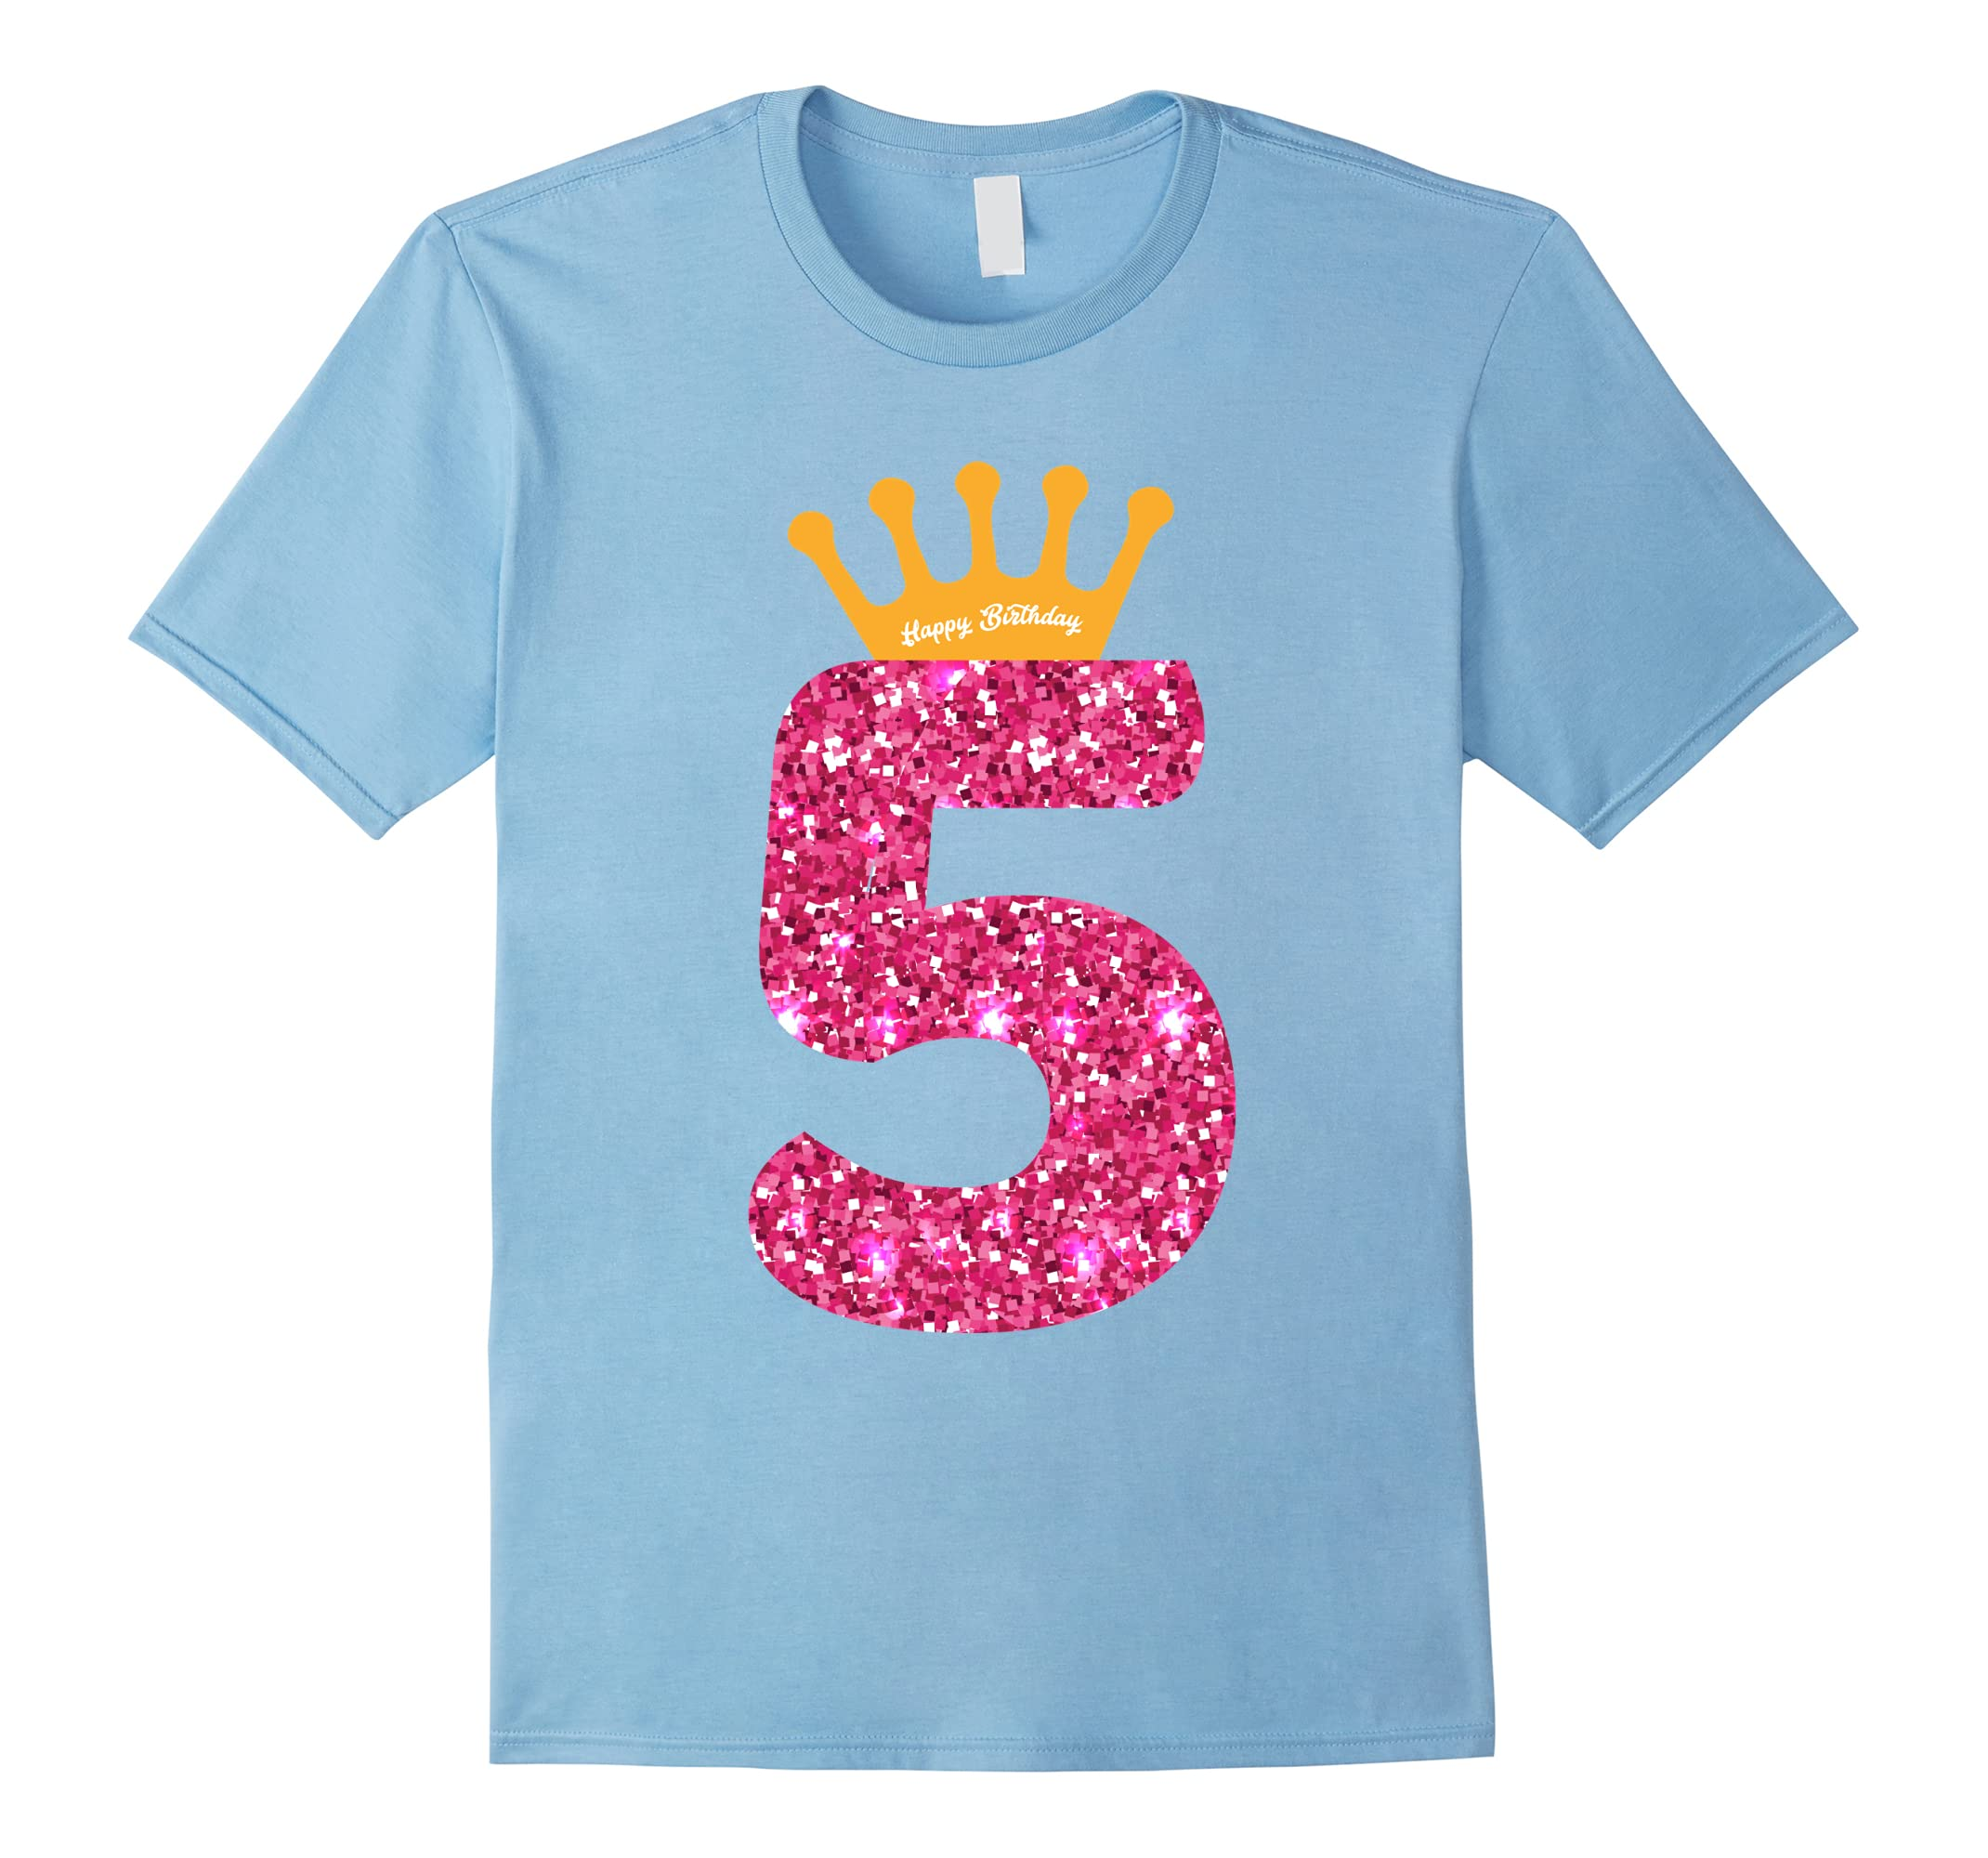 Happy Birthday Shirt Girls 5th Party 5 Years Old Bday Ah My One Gift